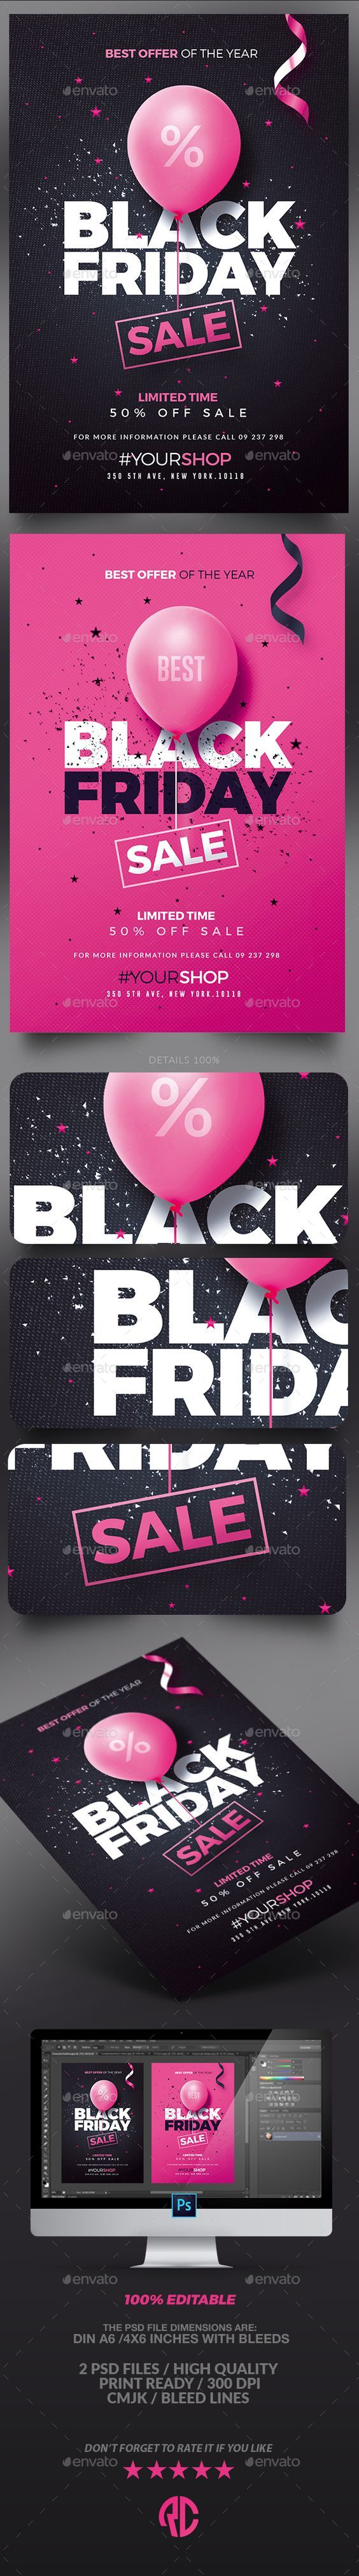 Black Friday | Flyer Template PSD: